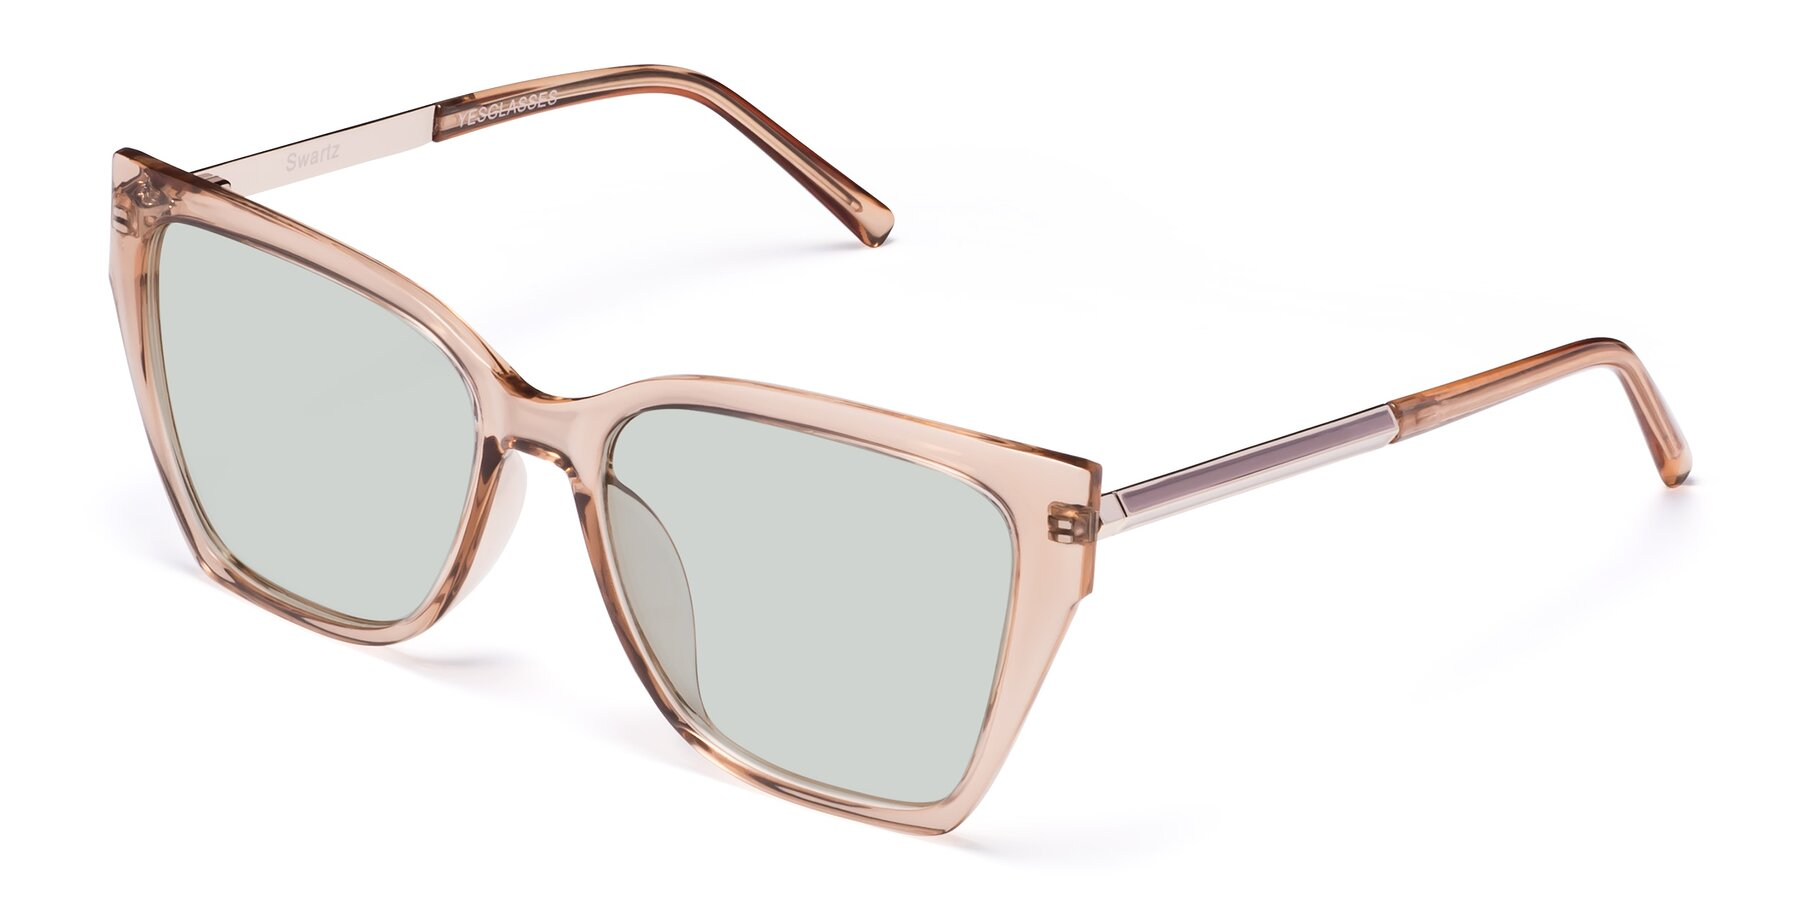 Angle of Swartz in Amber with Light Green Tinted Lenses